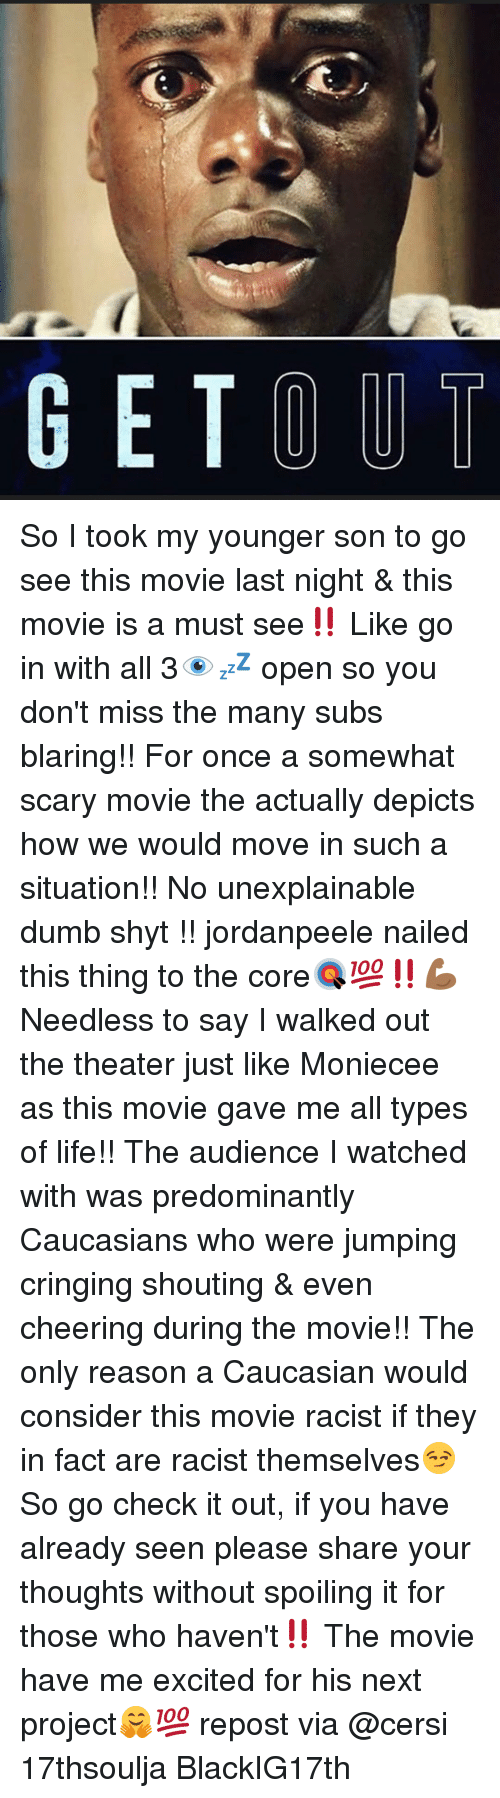 Dumb, Memes, and Caucasian: GET OUT So I took my younger son to go see this movie last night & this movie is a must see‼️ Like go in with all 3👁💤 open so you don't miss the many subs blaring!! For once a somewhat scary movie the actually depicts how we would move in such a situation!! No unexplainable dumb shyt !! jordanpeele nailed this thing to the core🎯💯‼️💪🏾 Needless to say I walked out the theater just like Moniecee as this movie gave me all types of life!! The audience I watched with was predominantly Caucasians who were jumping cringing shouting & even cheering during the movie!! The only reason a Caucasian would consider this movie racist if they in fact are racist themselves😏 So go check it out, if you have already seen please share your thoughts without spoiling it for those who haven't‼️ The movie have me excited for his next project🤗💯 repost via @cersi 17thsoulja BlackIG17th